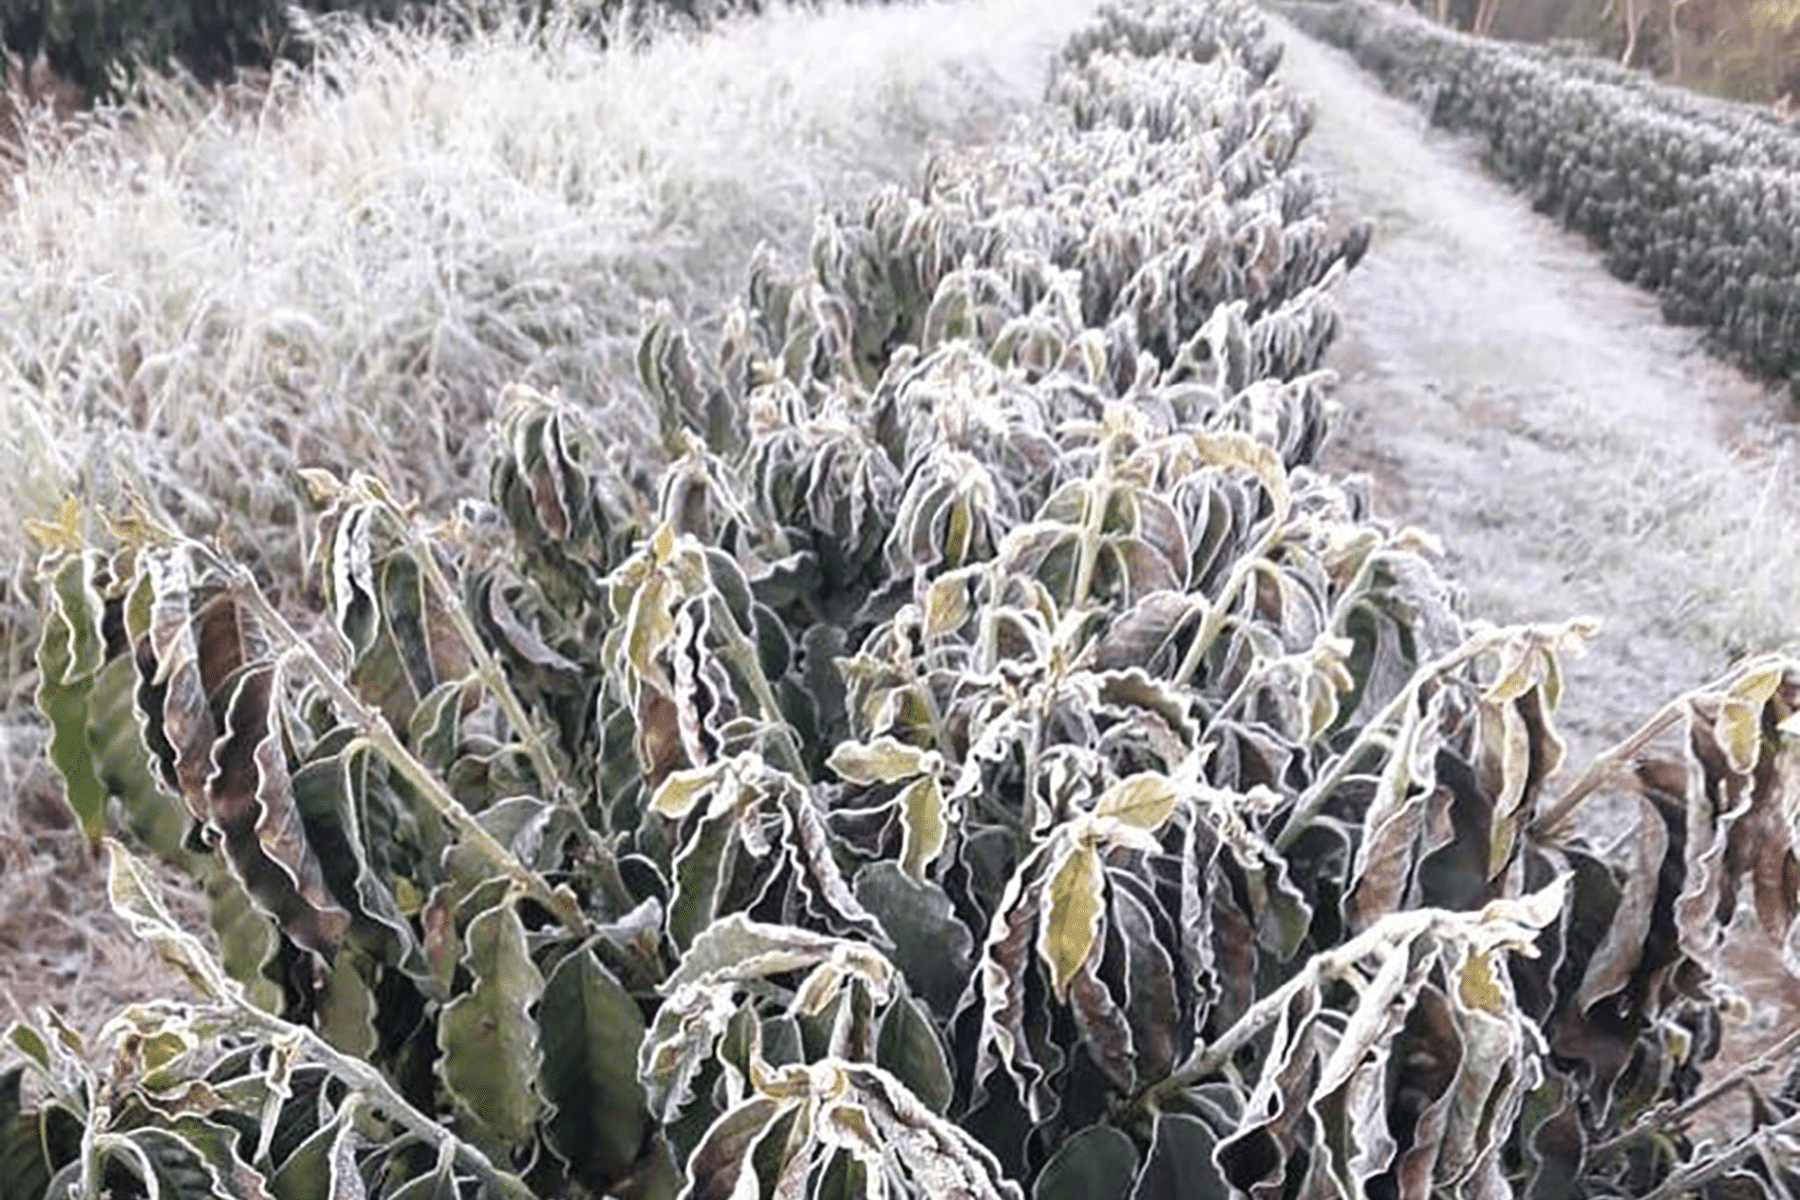 Minas Hill Foundation supports Brazil's frost affected farms - BeanScene